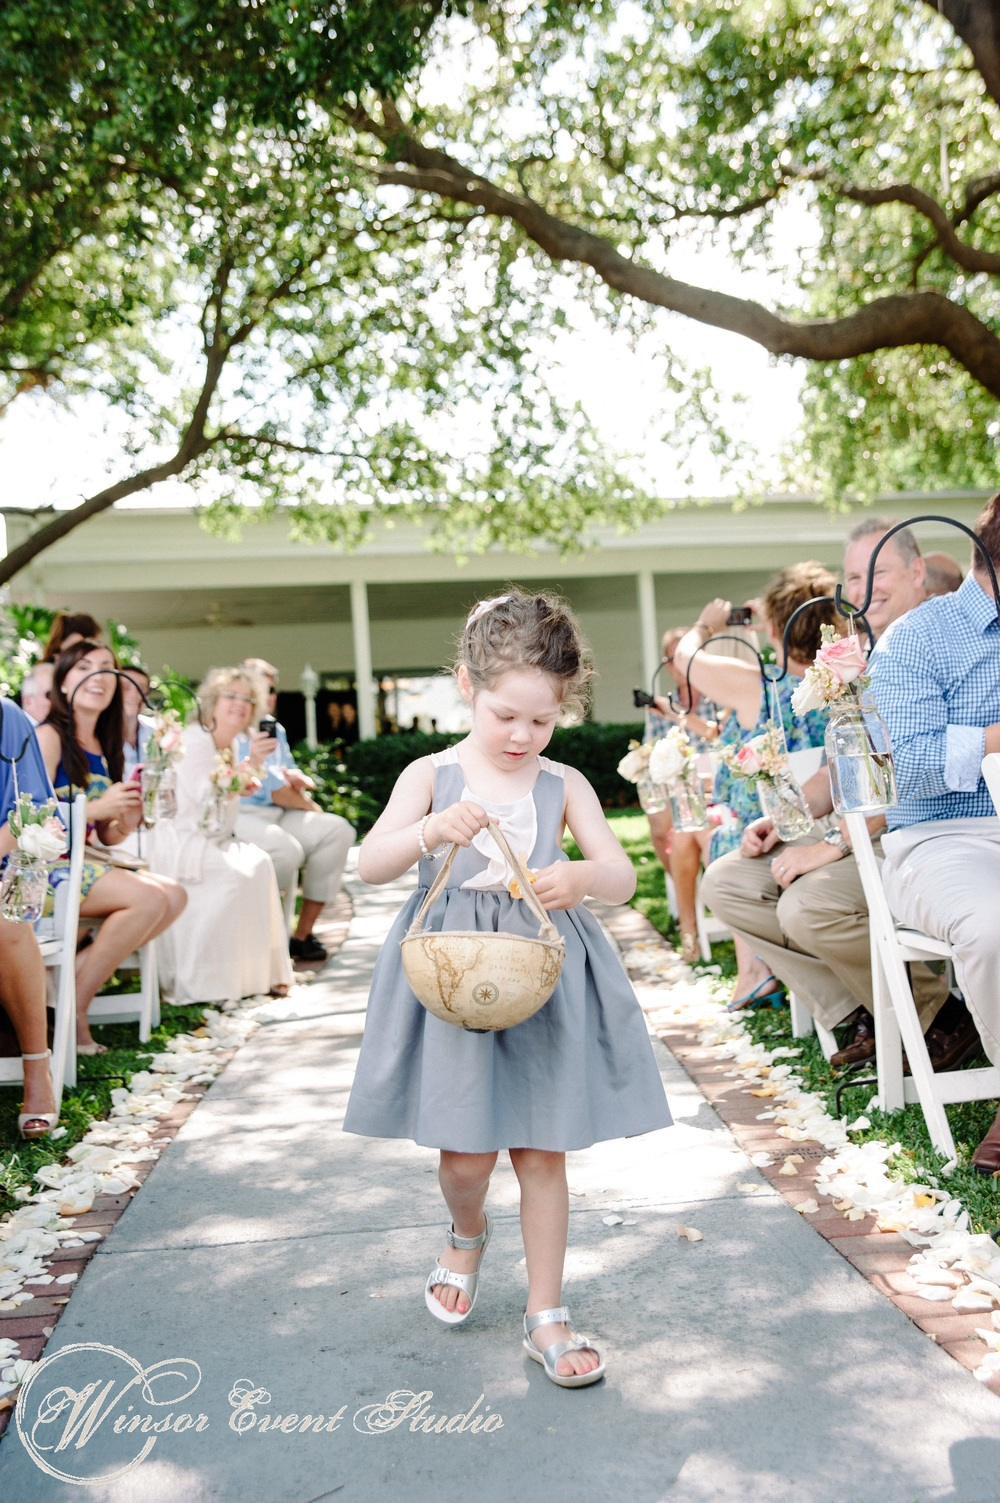 The flower girl carried petals in a handmade globe basket